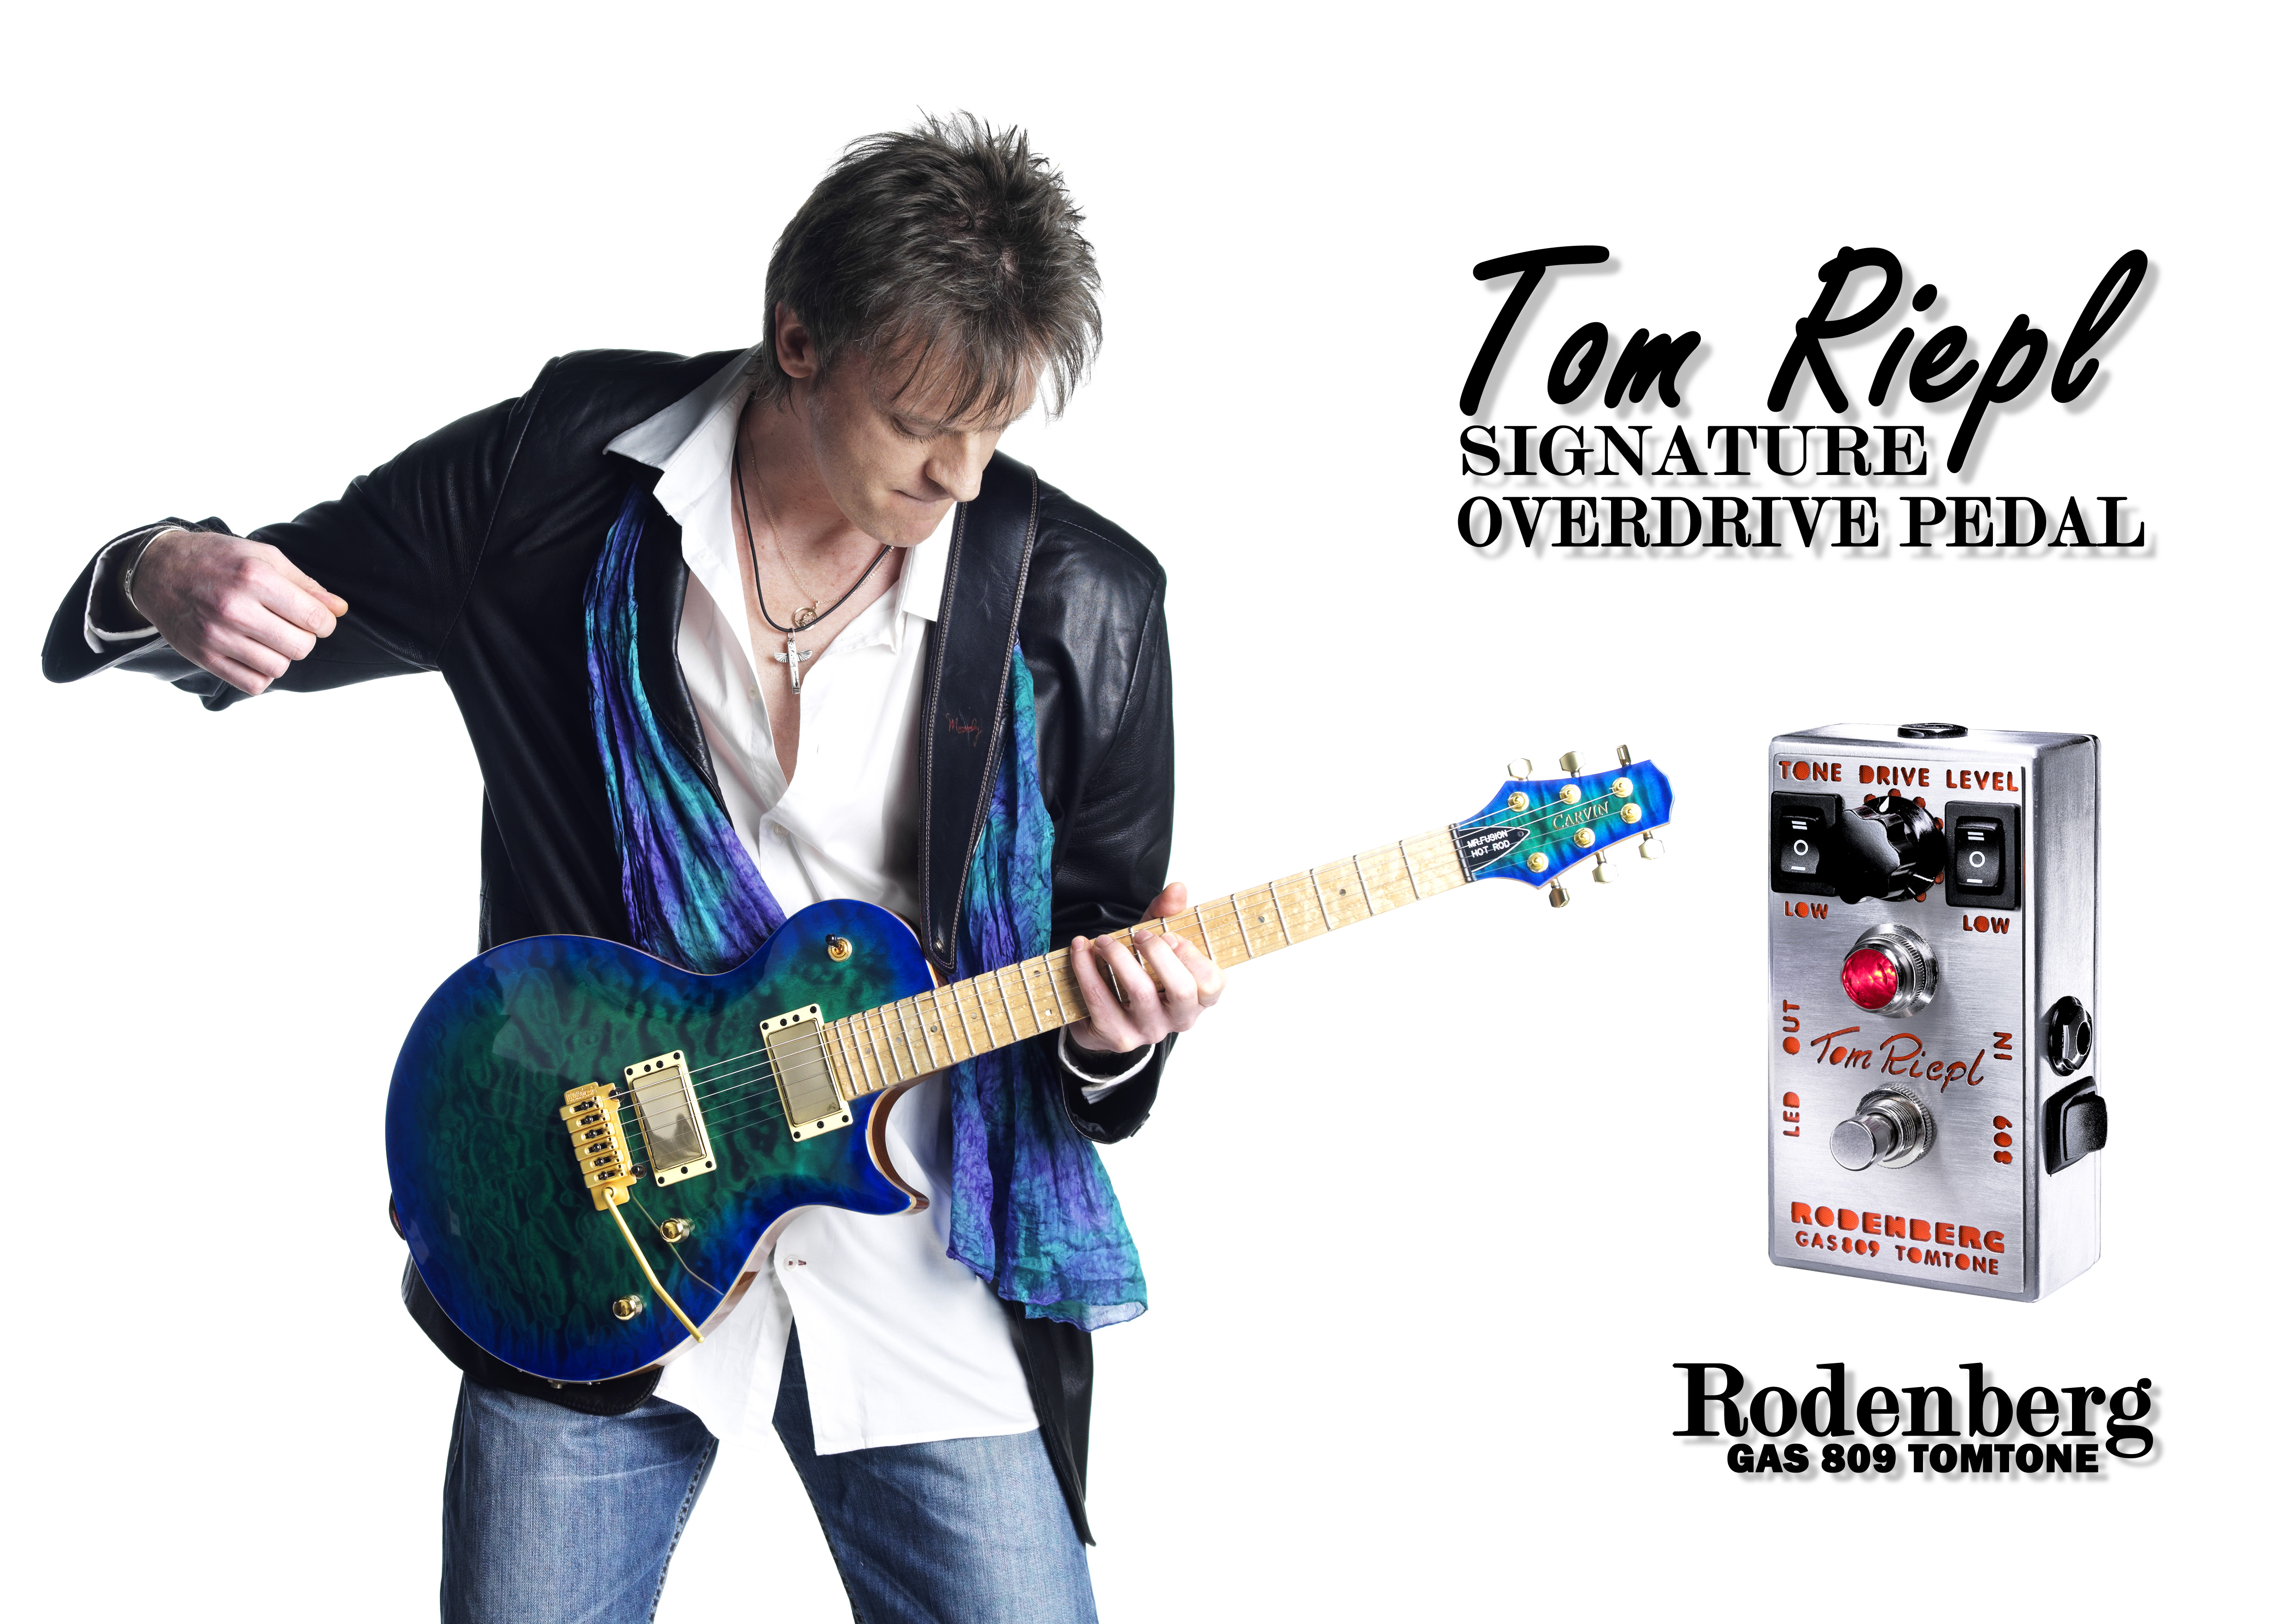 Press Photo Rodenberg Tom Riepl Signature Overdrive Pedal